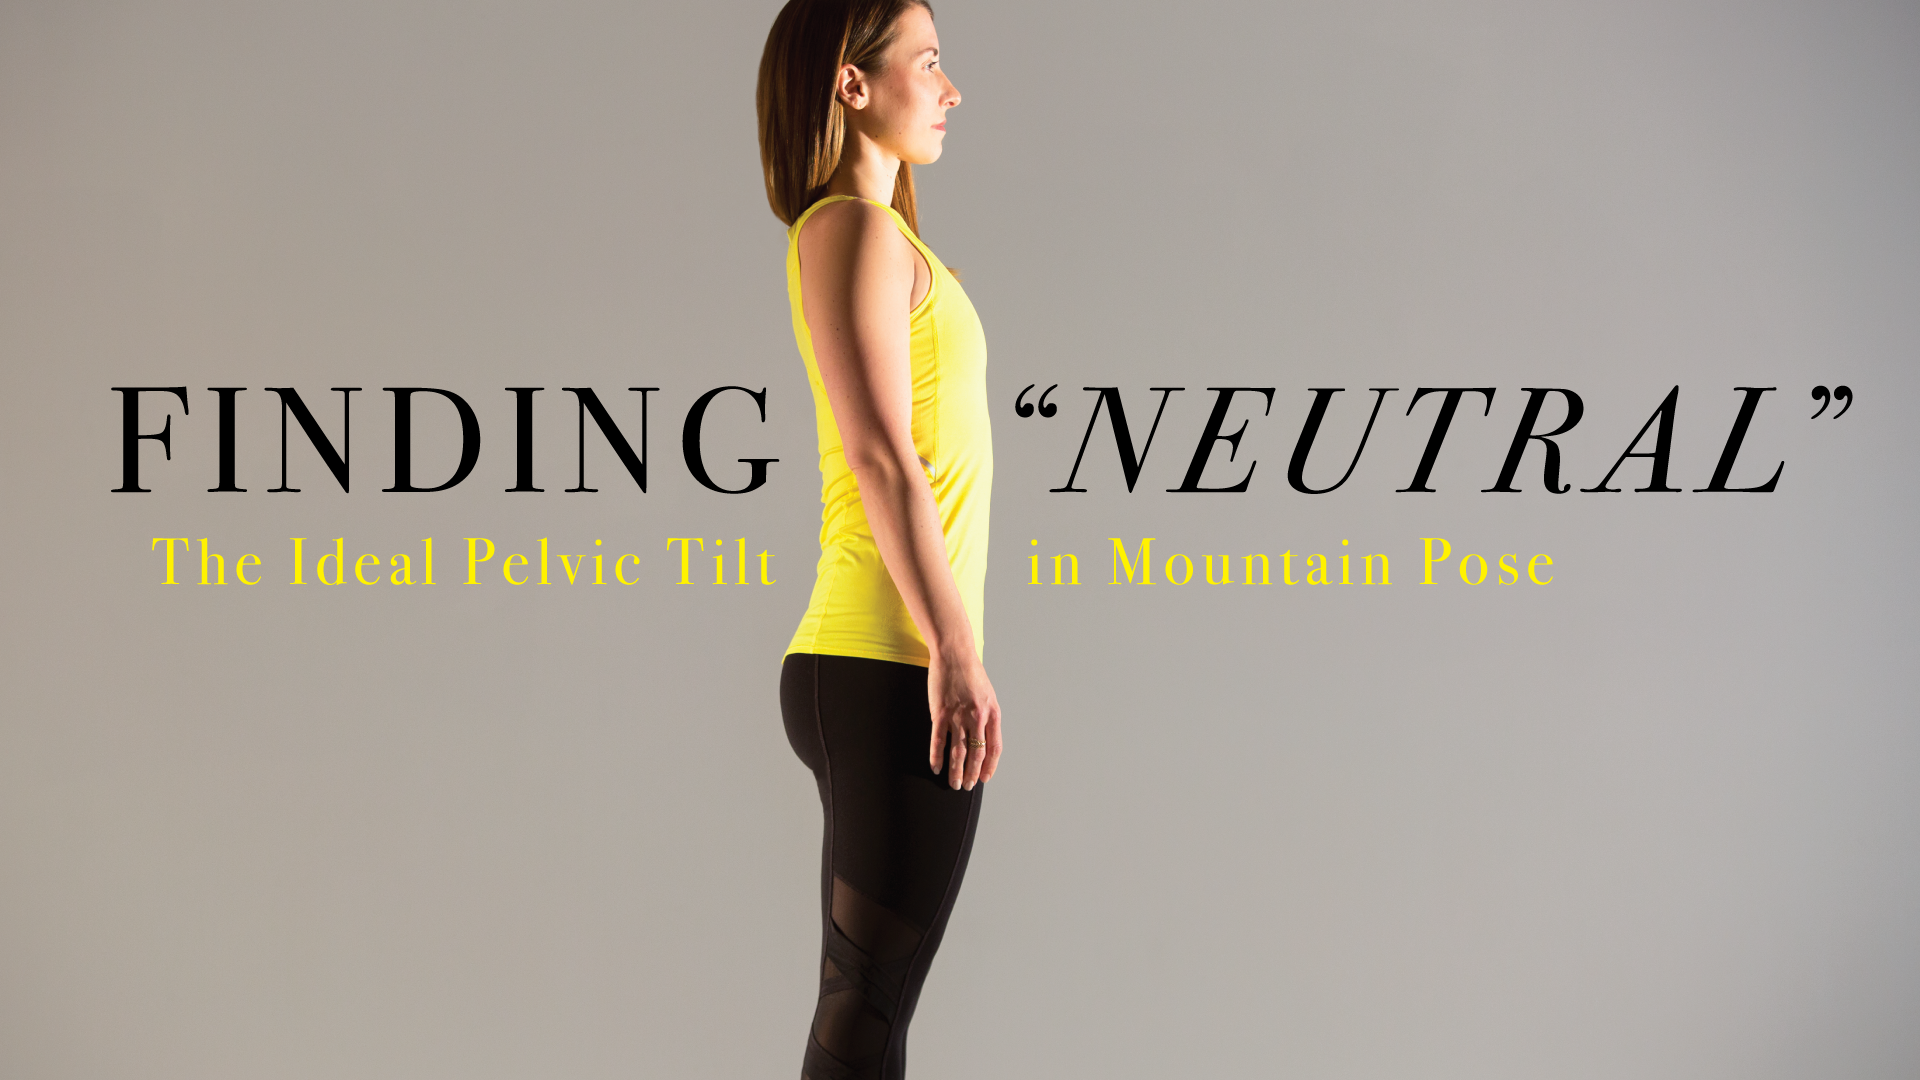 """Finding """"Neutral"""": The Ideal Pelvic Tilt in Mountain Pose"""